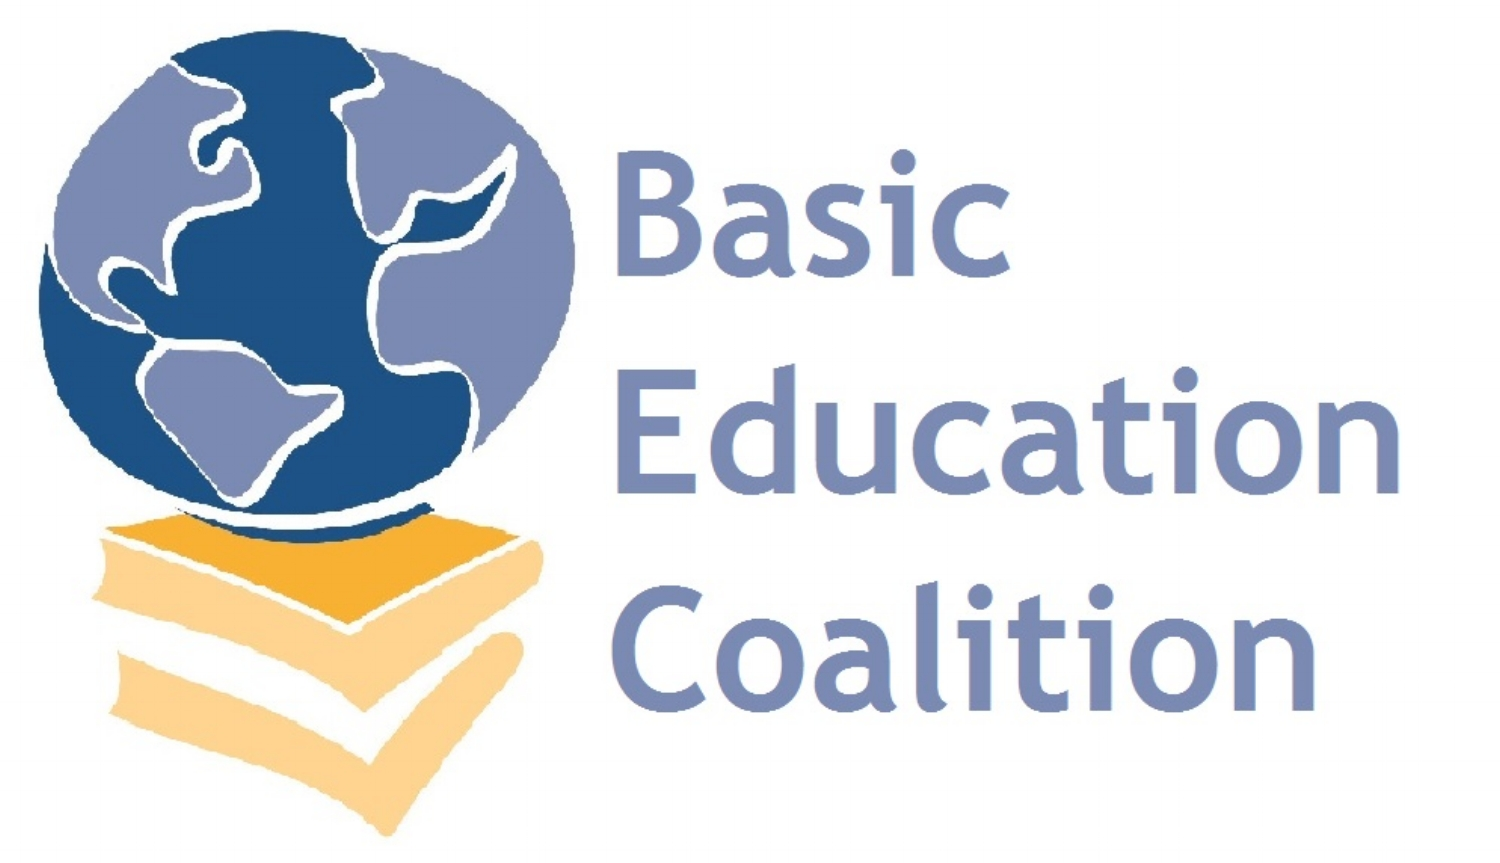 Basic Education Coalition